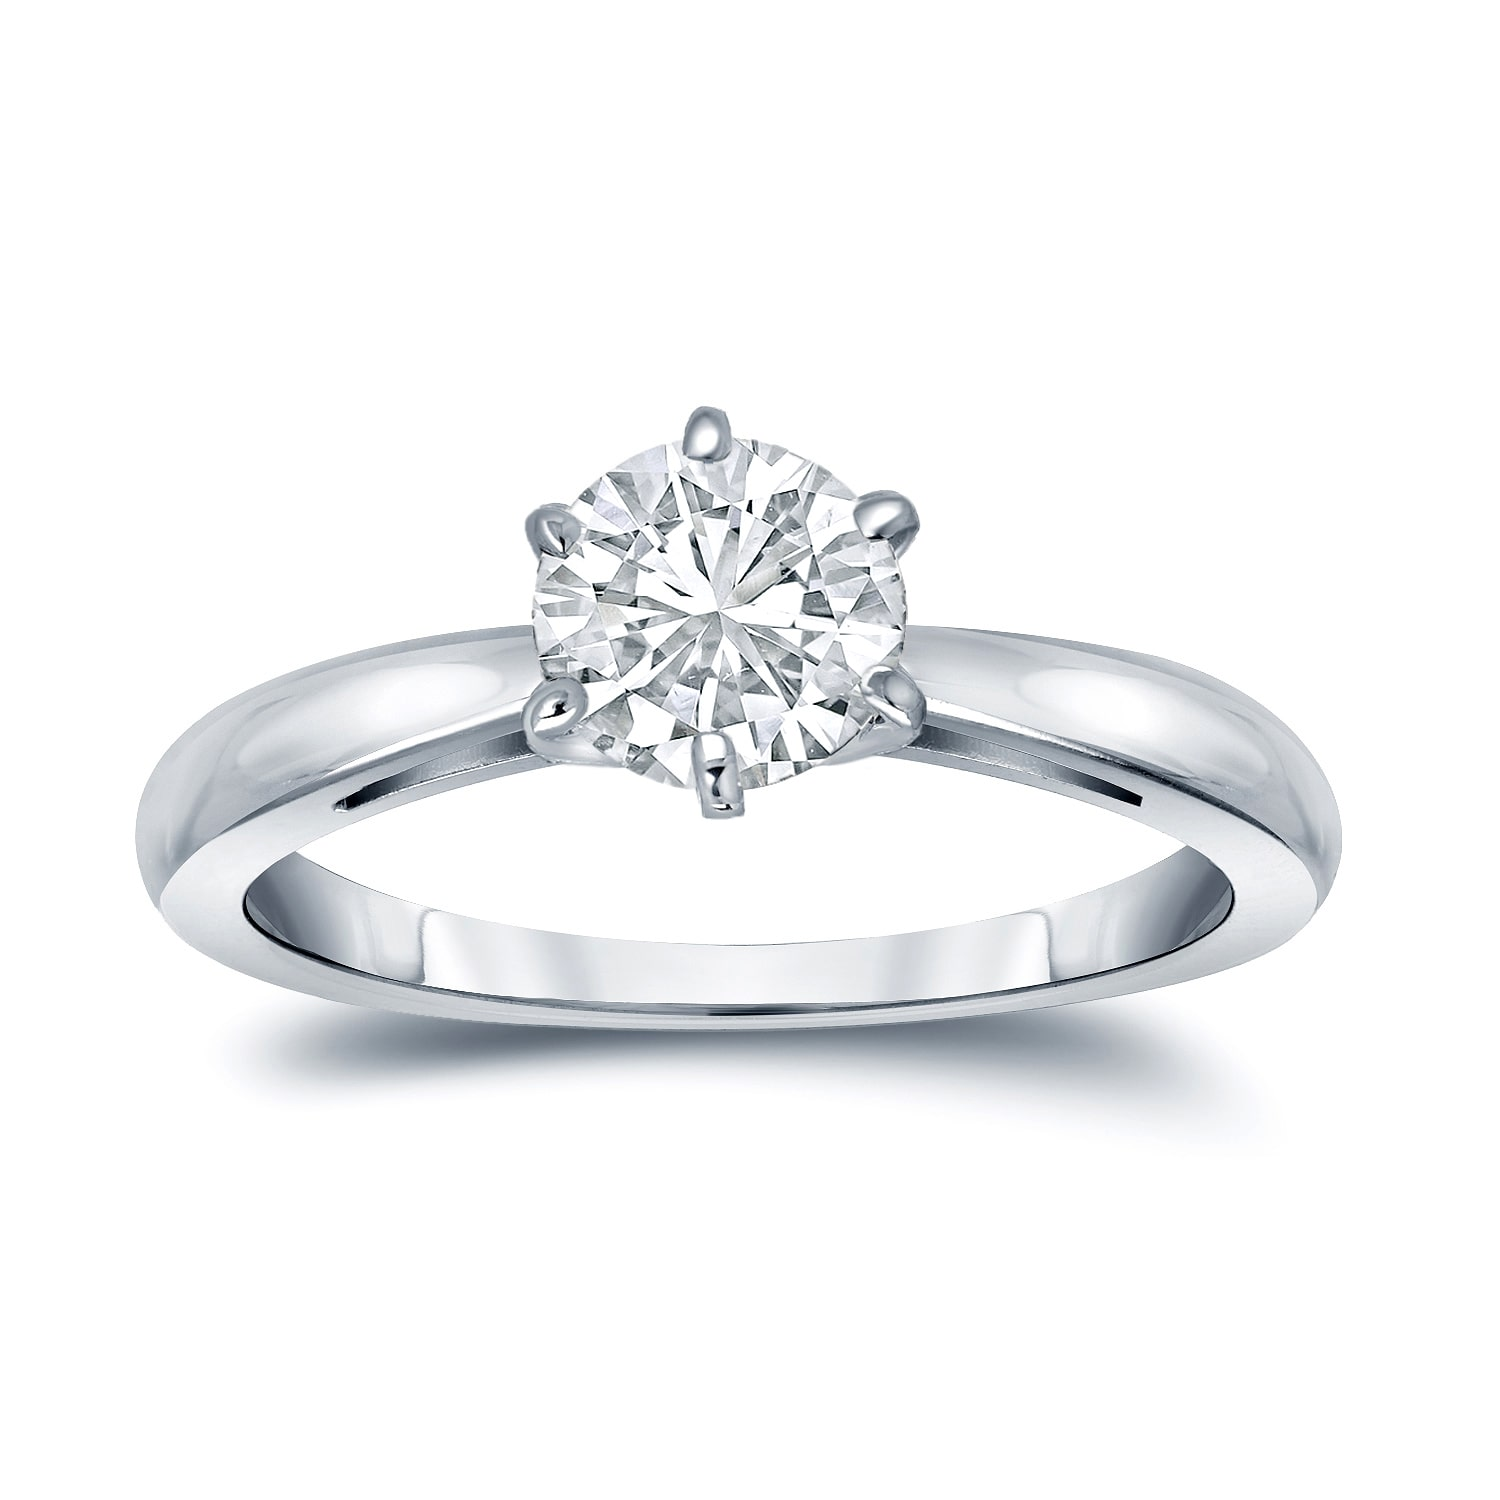 Auriya  GIA Certified 14k White Gold 6-Prong 1 ct. TDW Round-Cut Diamond Solitaire Eng